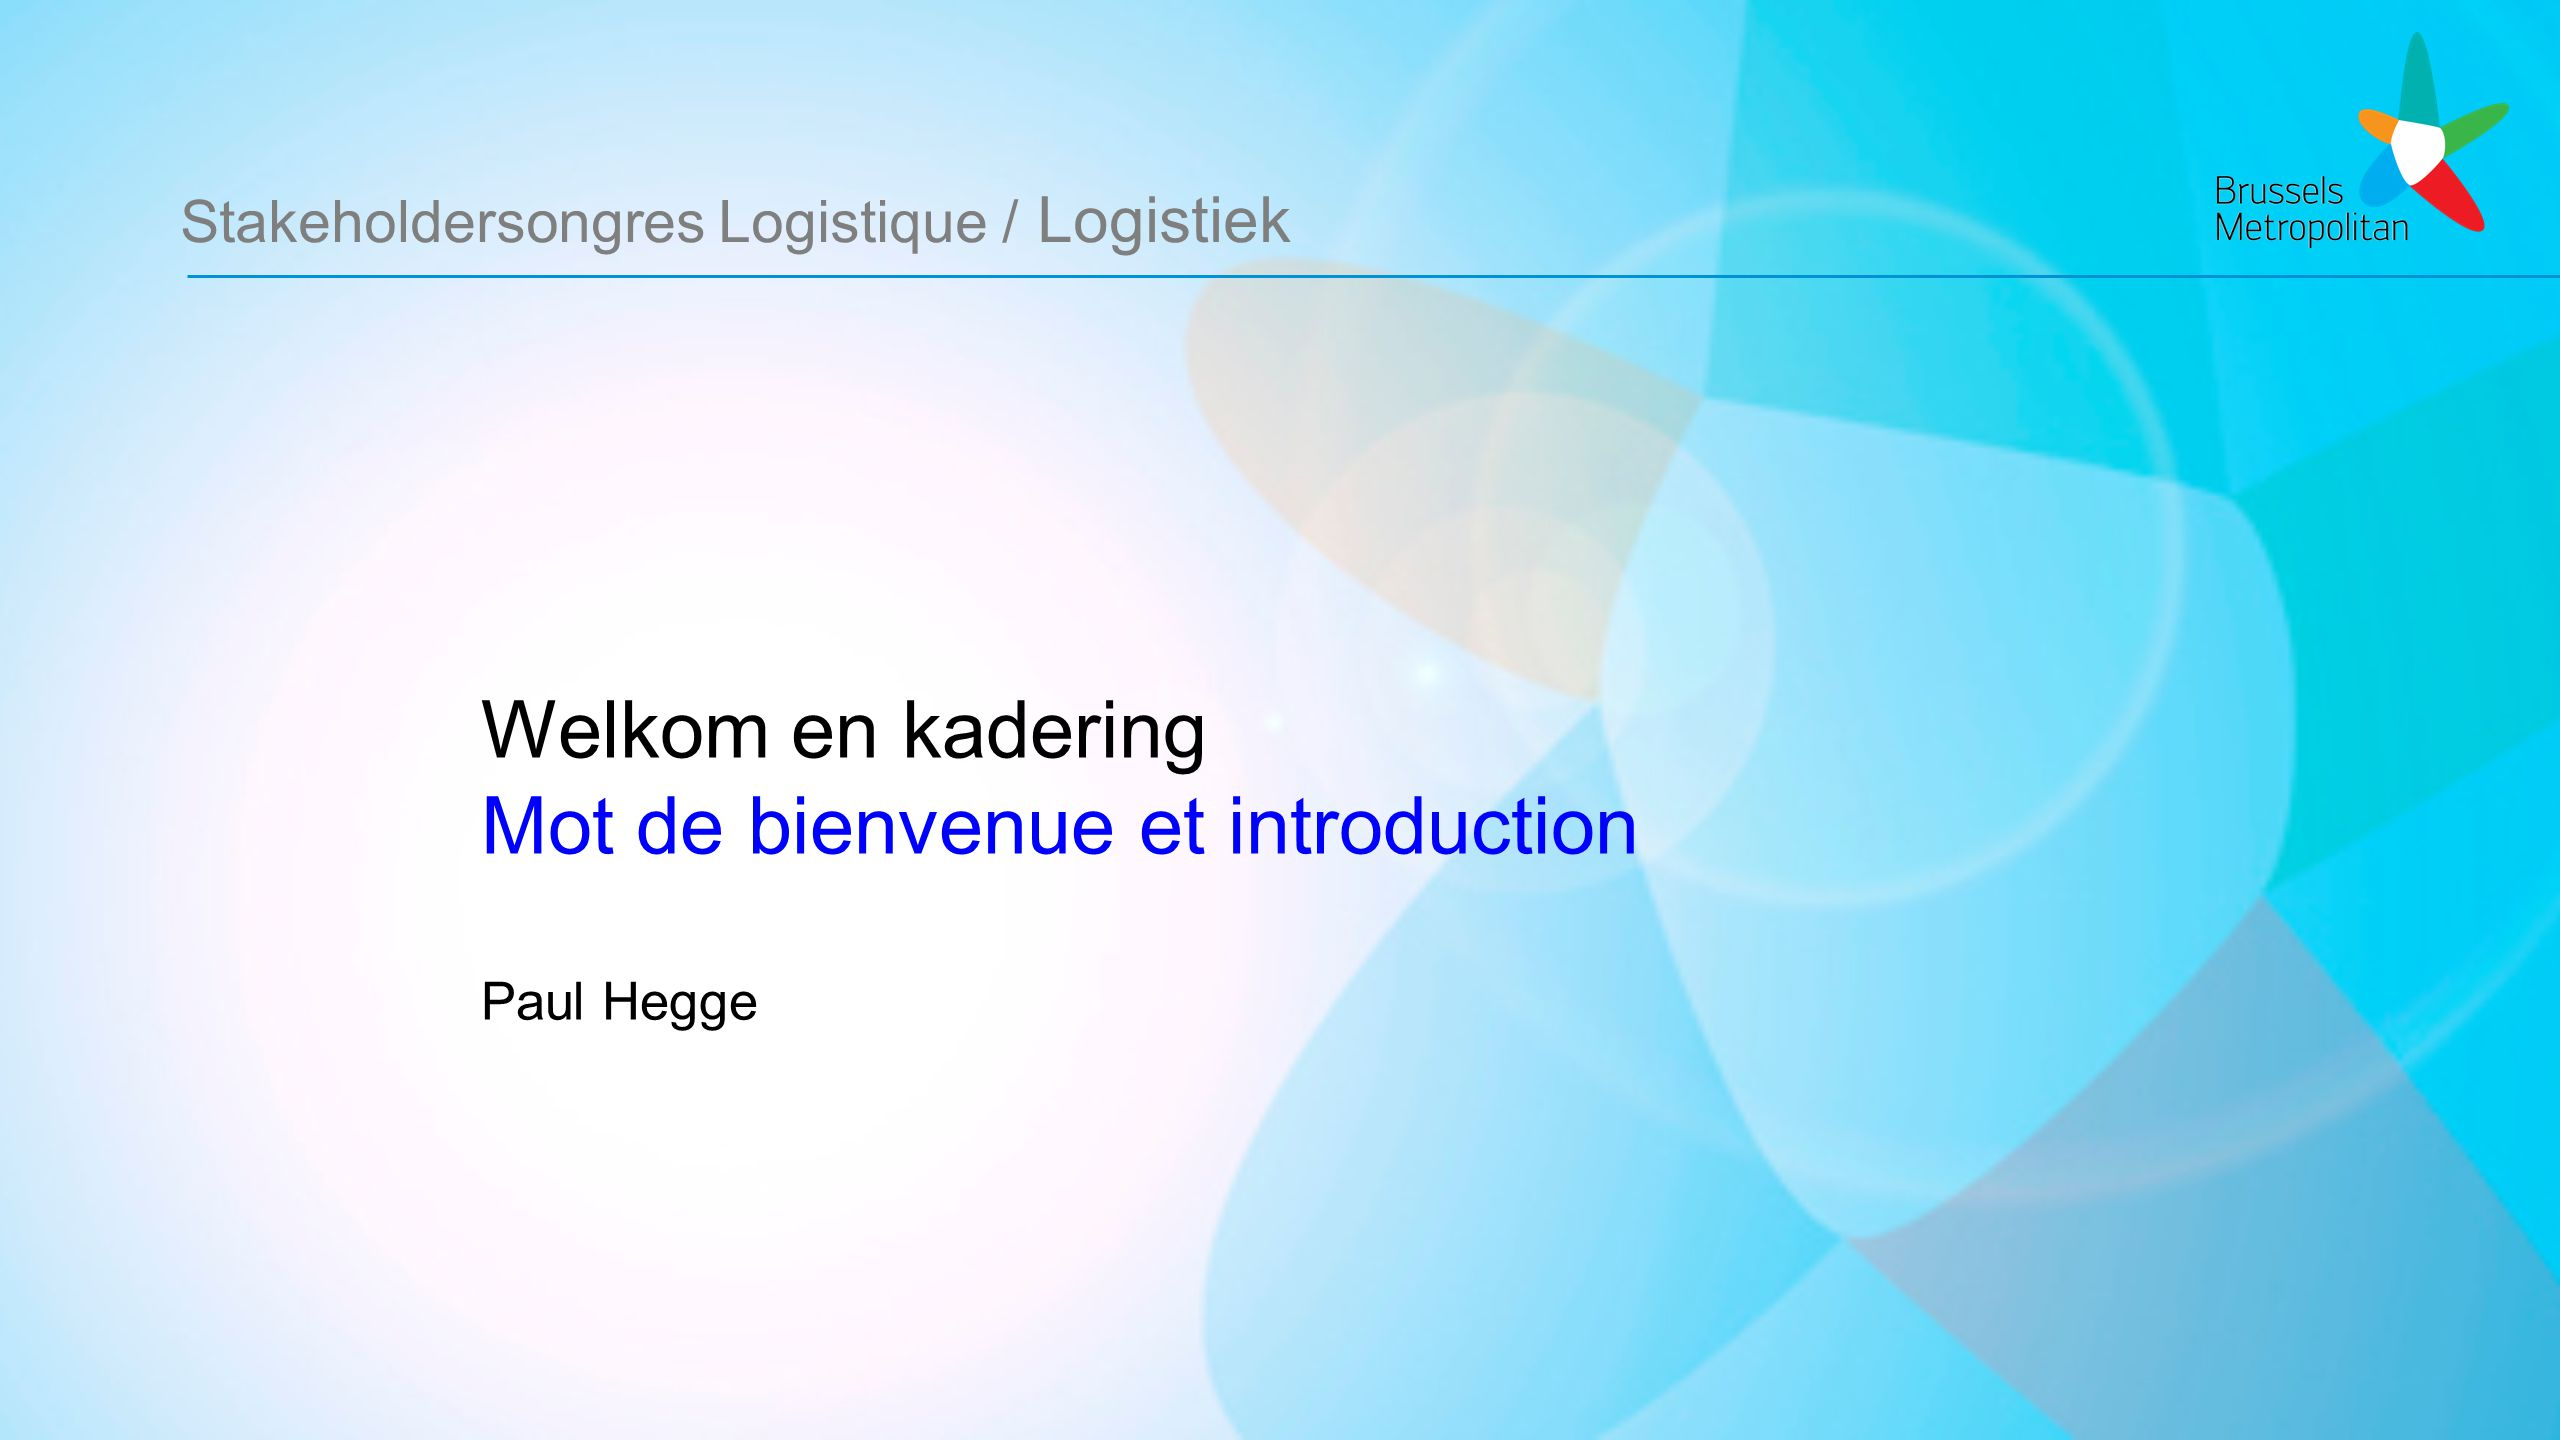 Stakeholdersongres Logistique / Logistiek Welkom en kadering Mot de bienvenue et introduction Paul Hegge